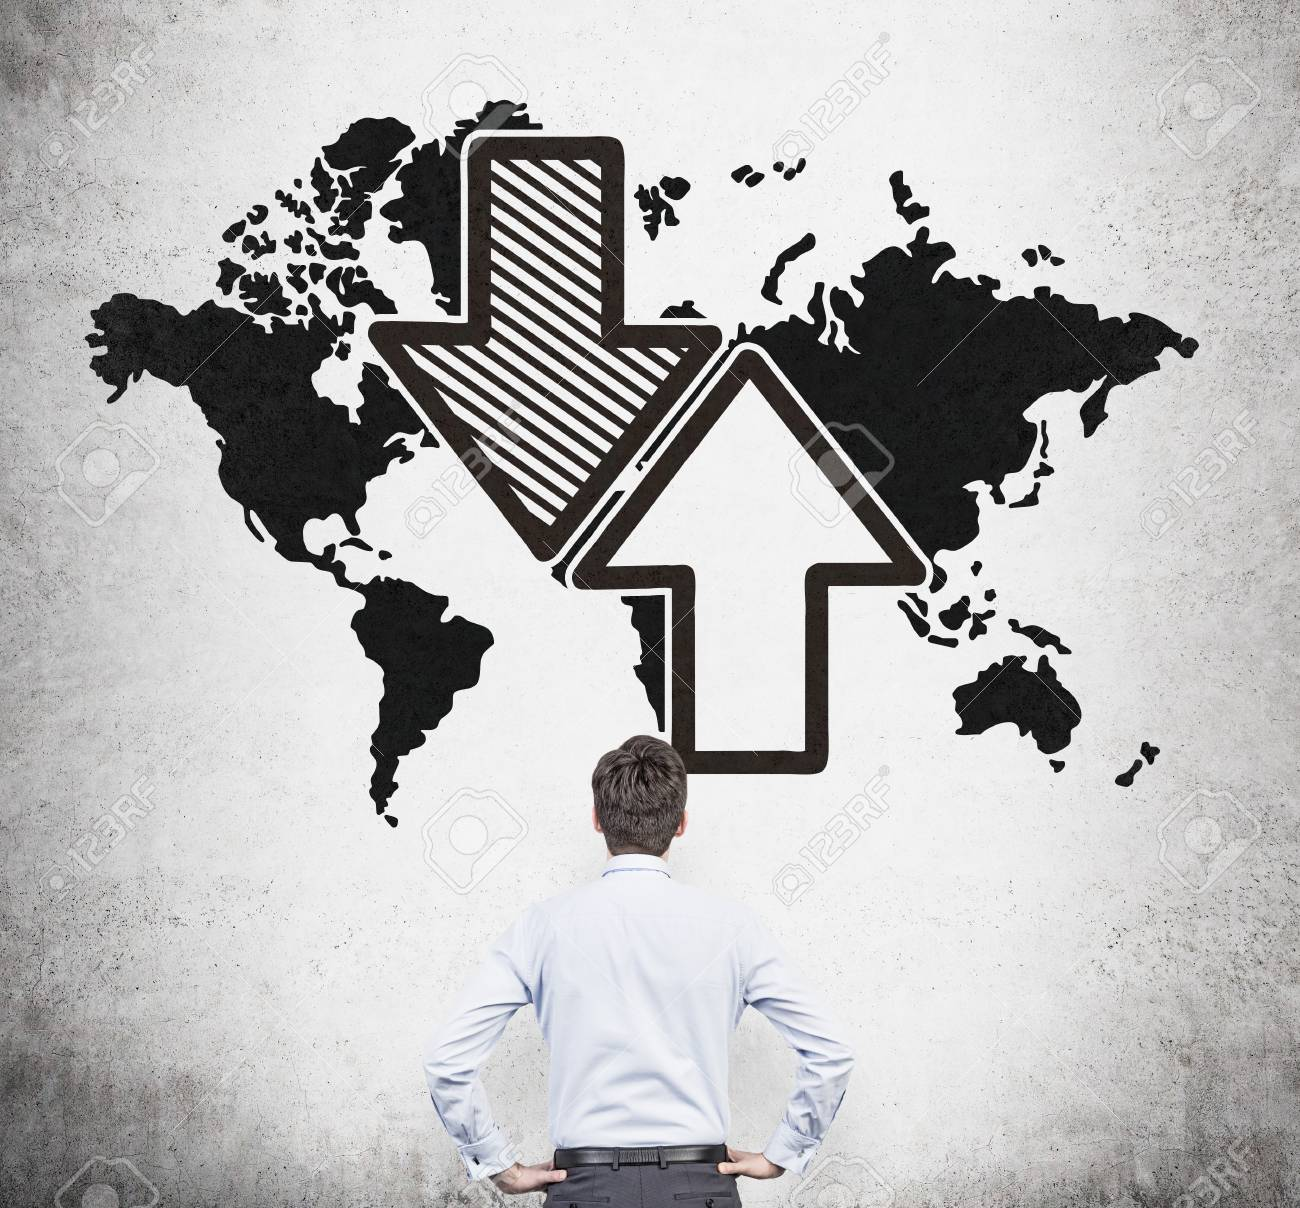 Businessman looking at drawing world map with arrow on gray wall businessman looking at drawing world map with arrow on gray wall stock photo 36741021 gumiabroncs Images